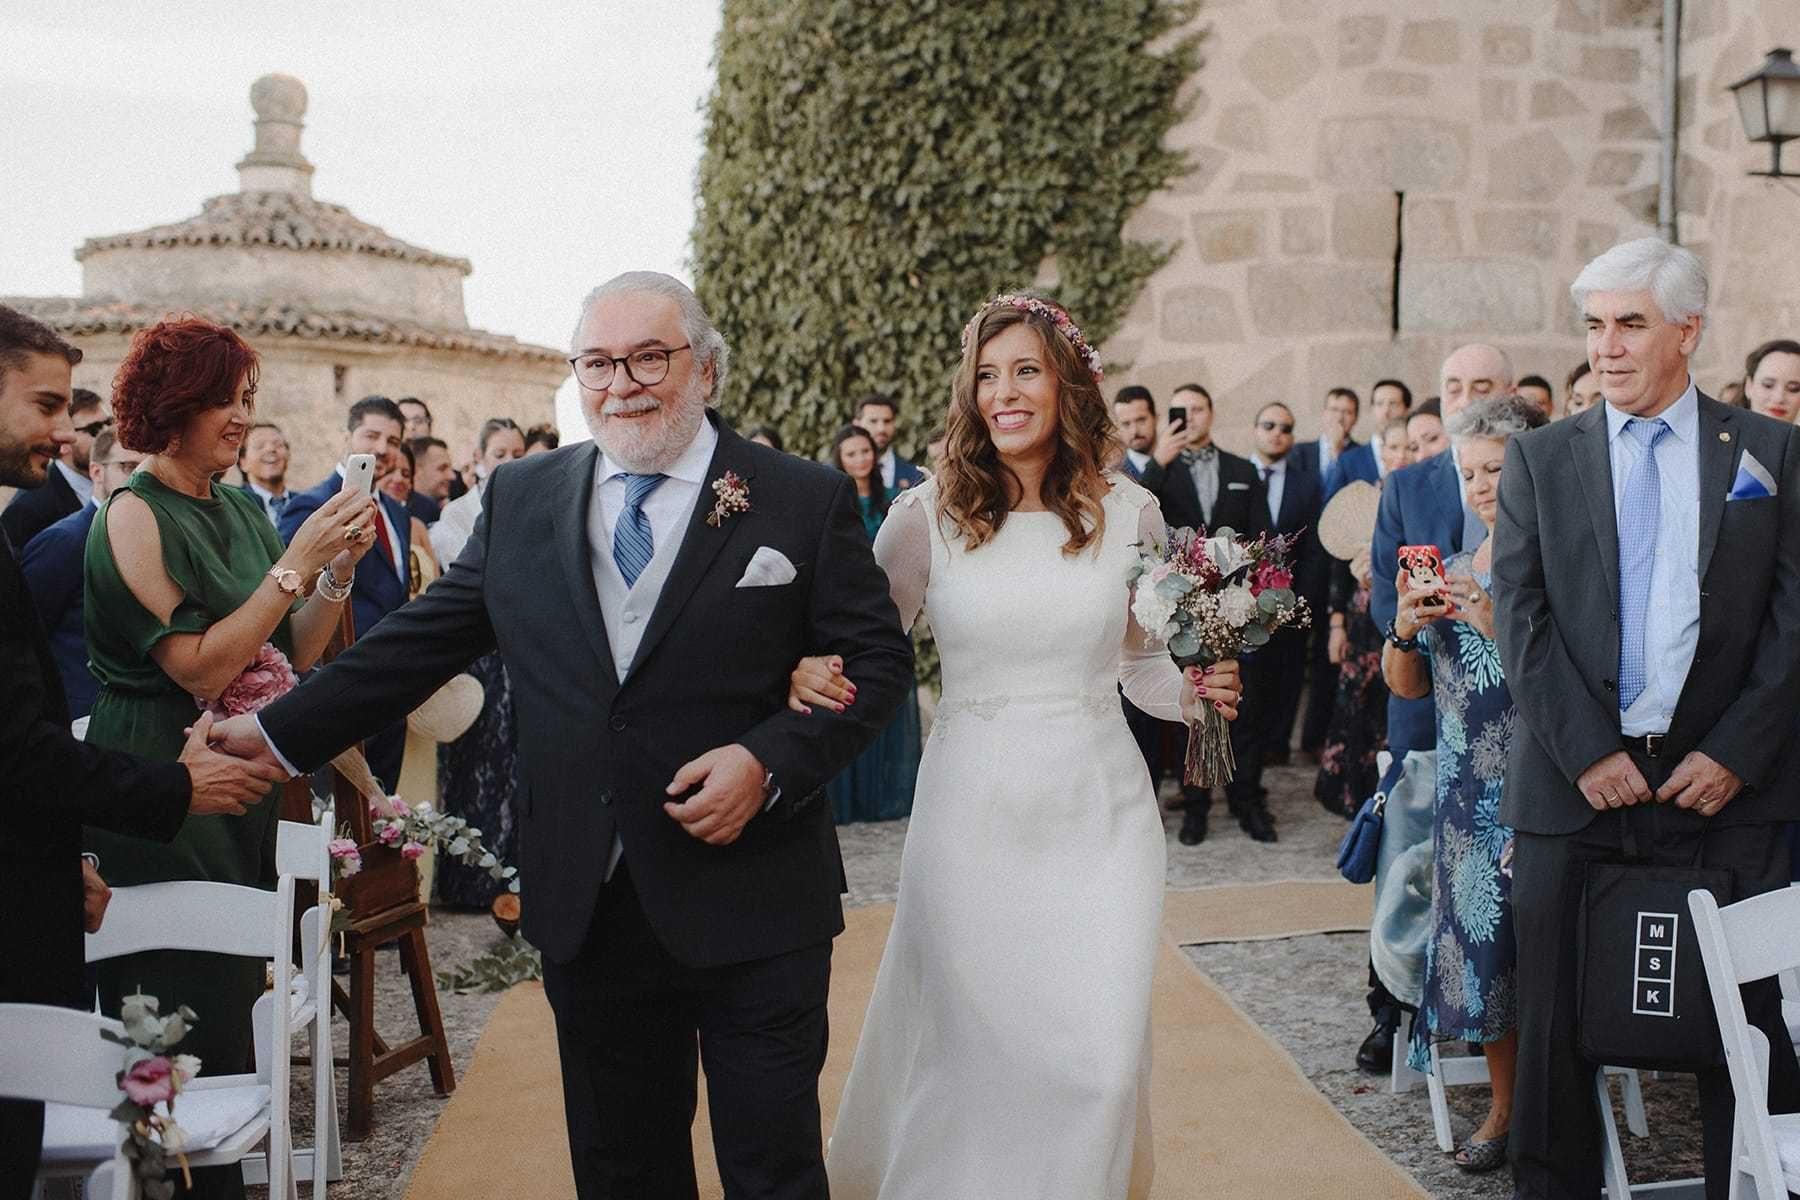 Entrada de la novia en ceremonia civil